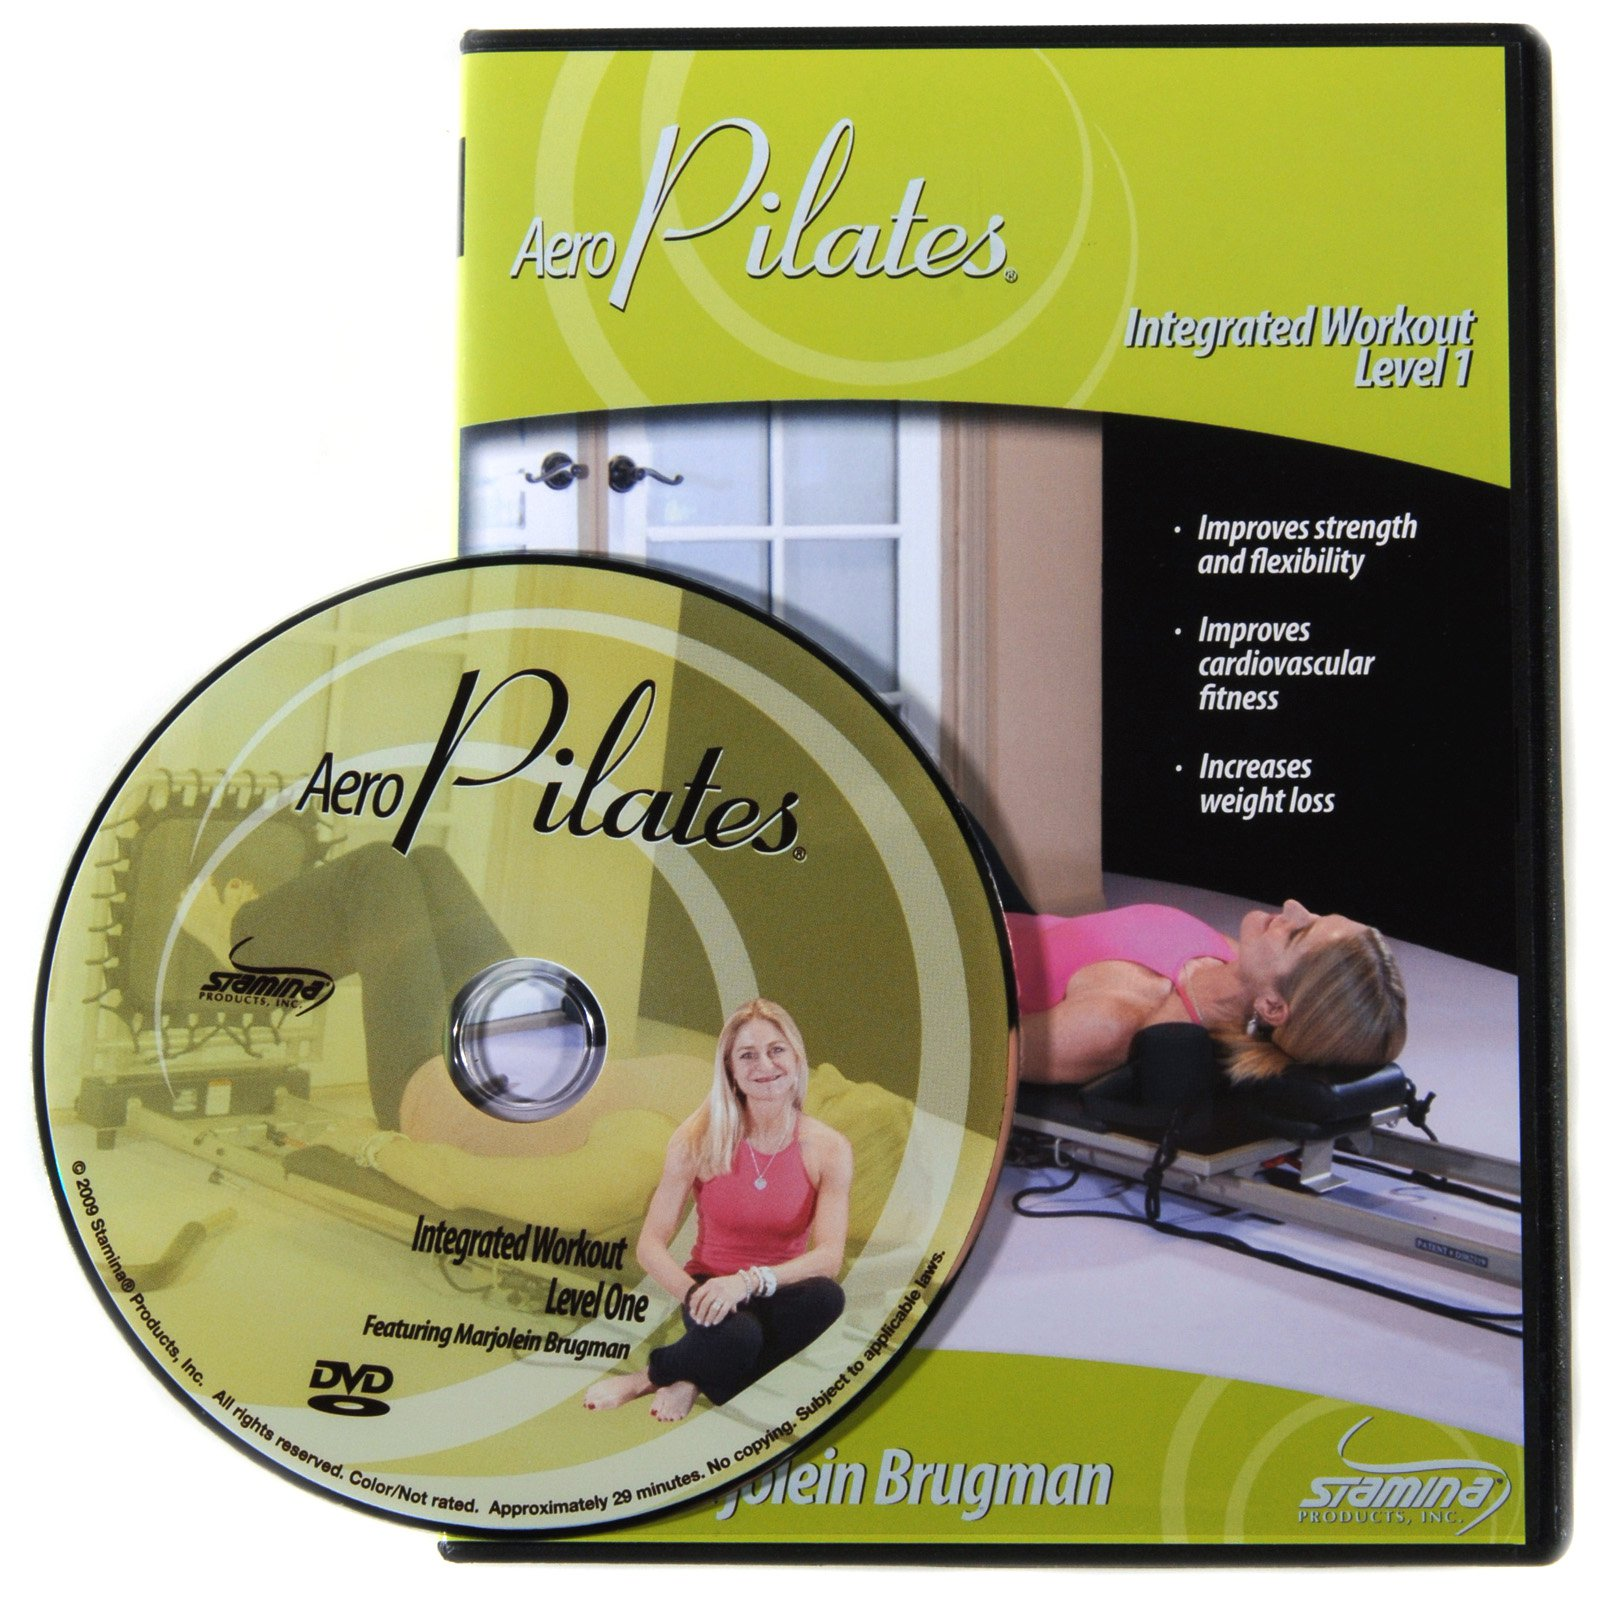 Stamina AeroPilates Level One Integrated Workout with Marjolein Brugman DVD